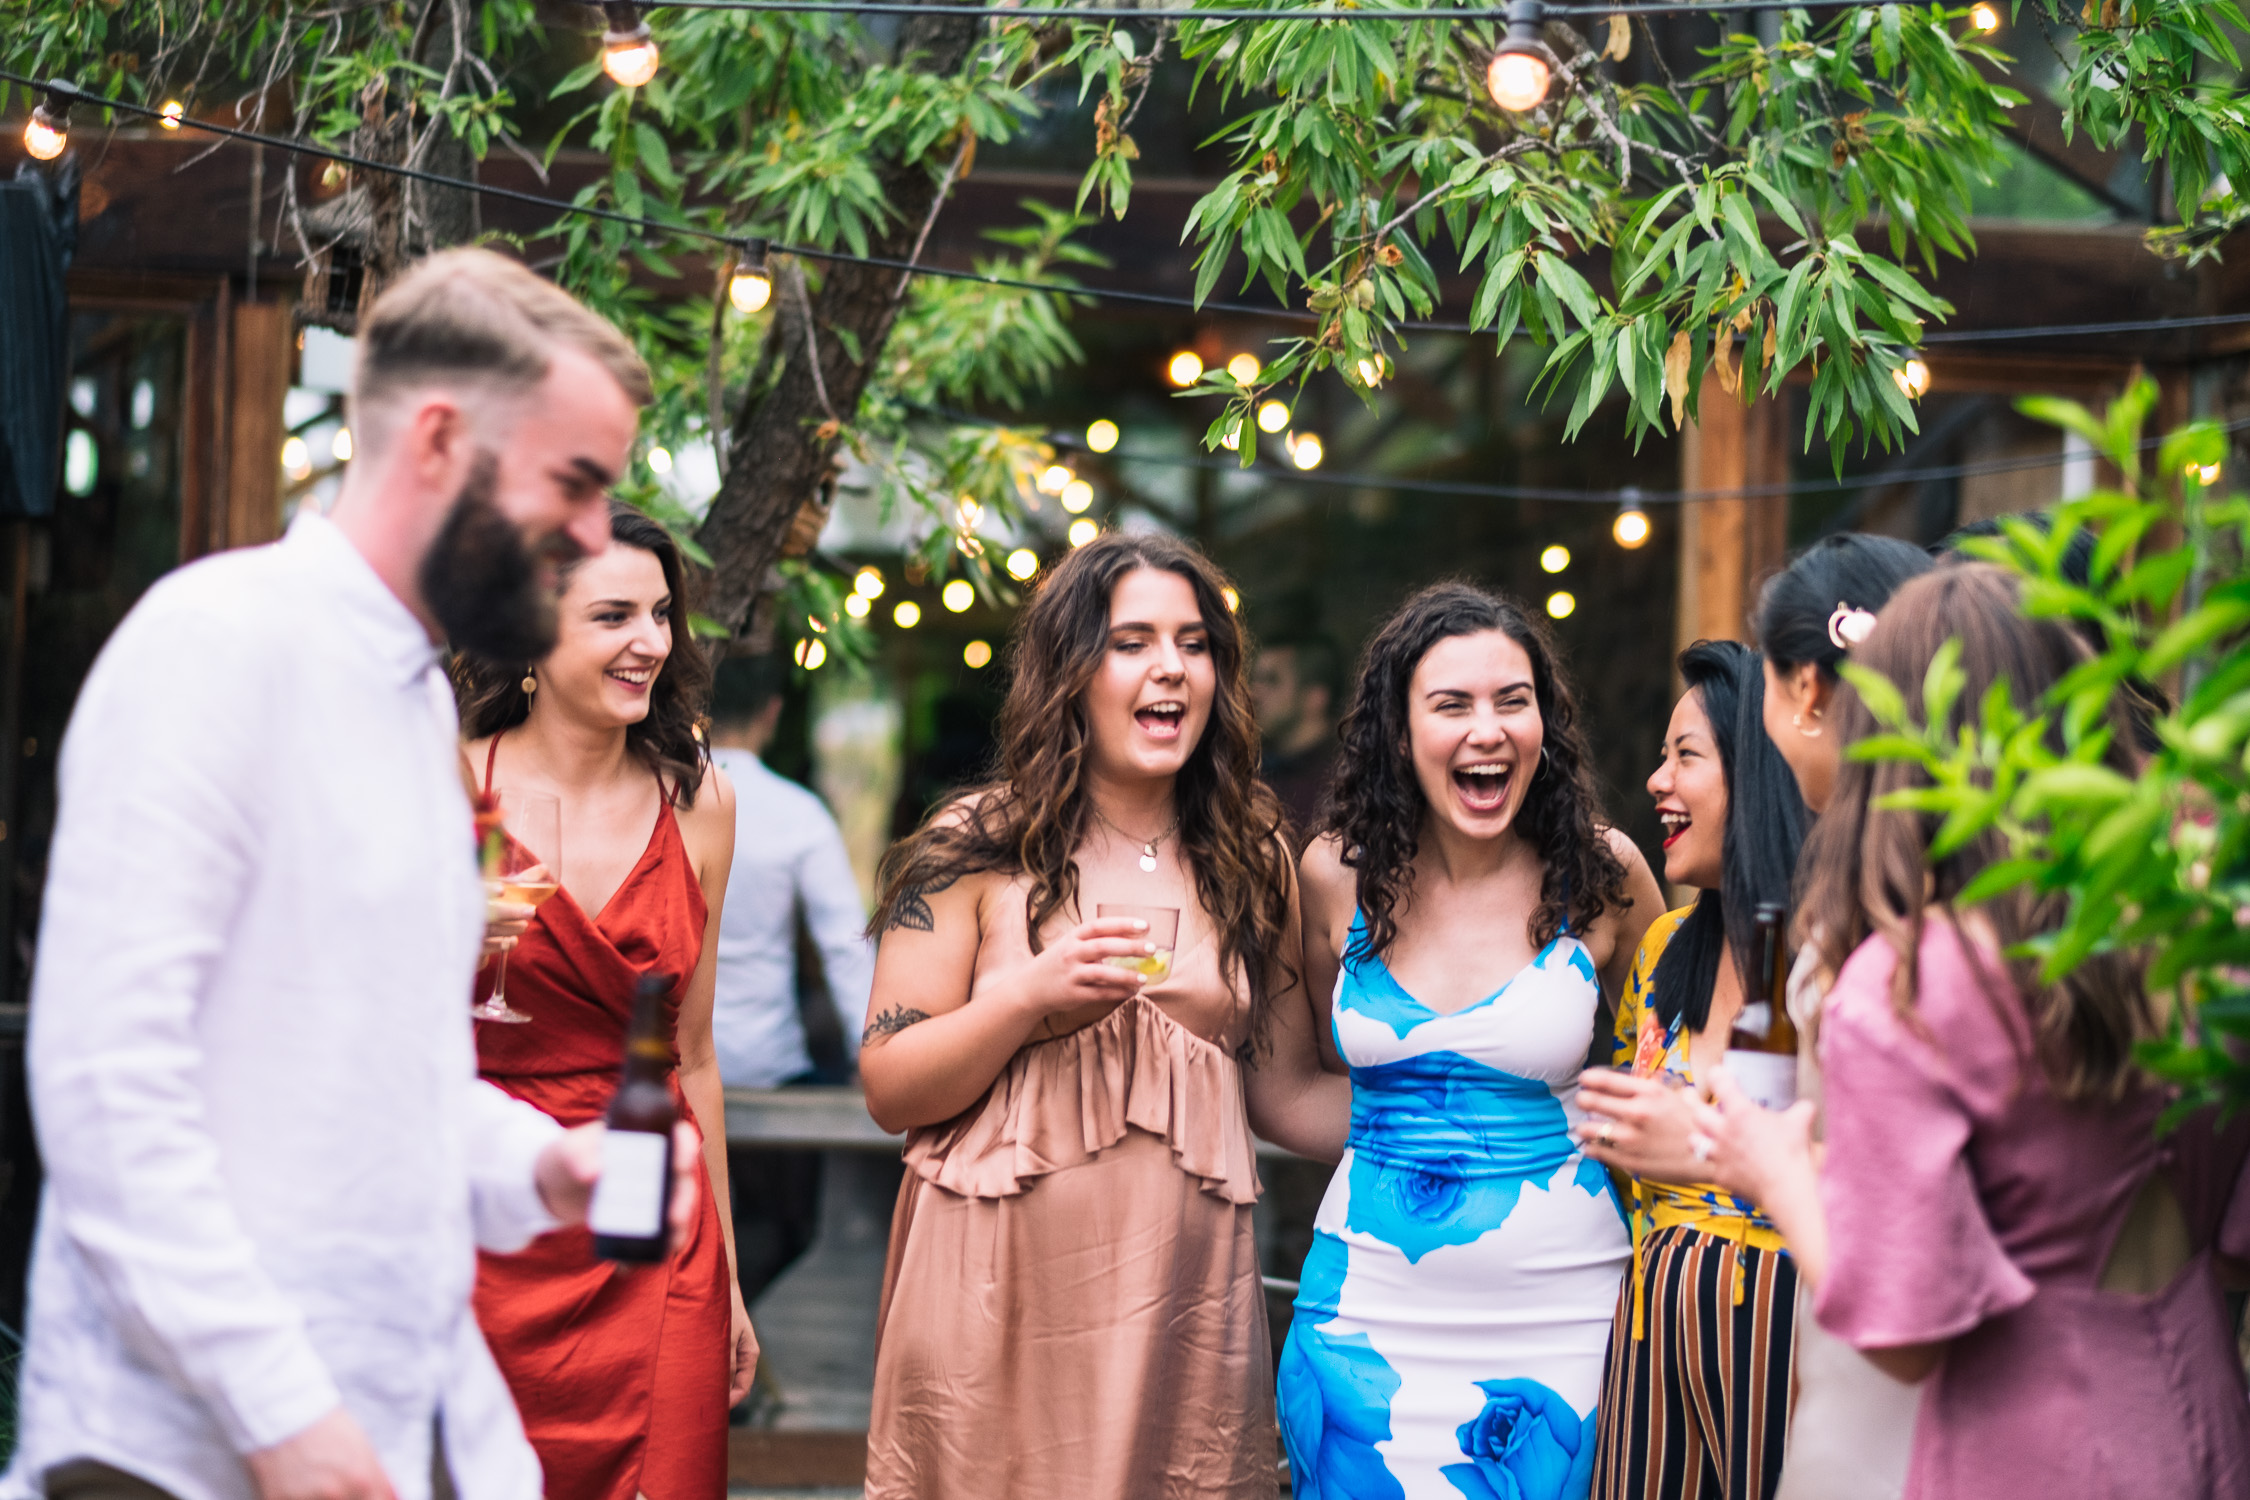 Melbourne Sunnystones Camp Wedding - guests having fun